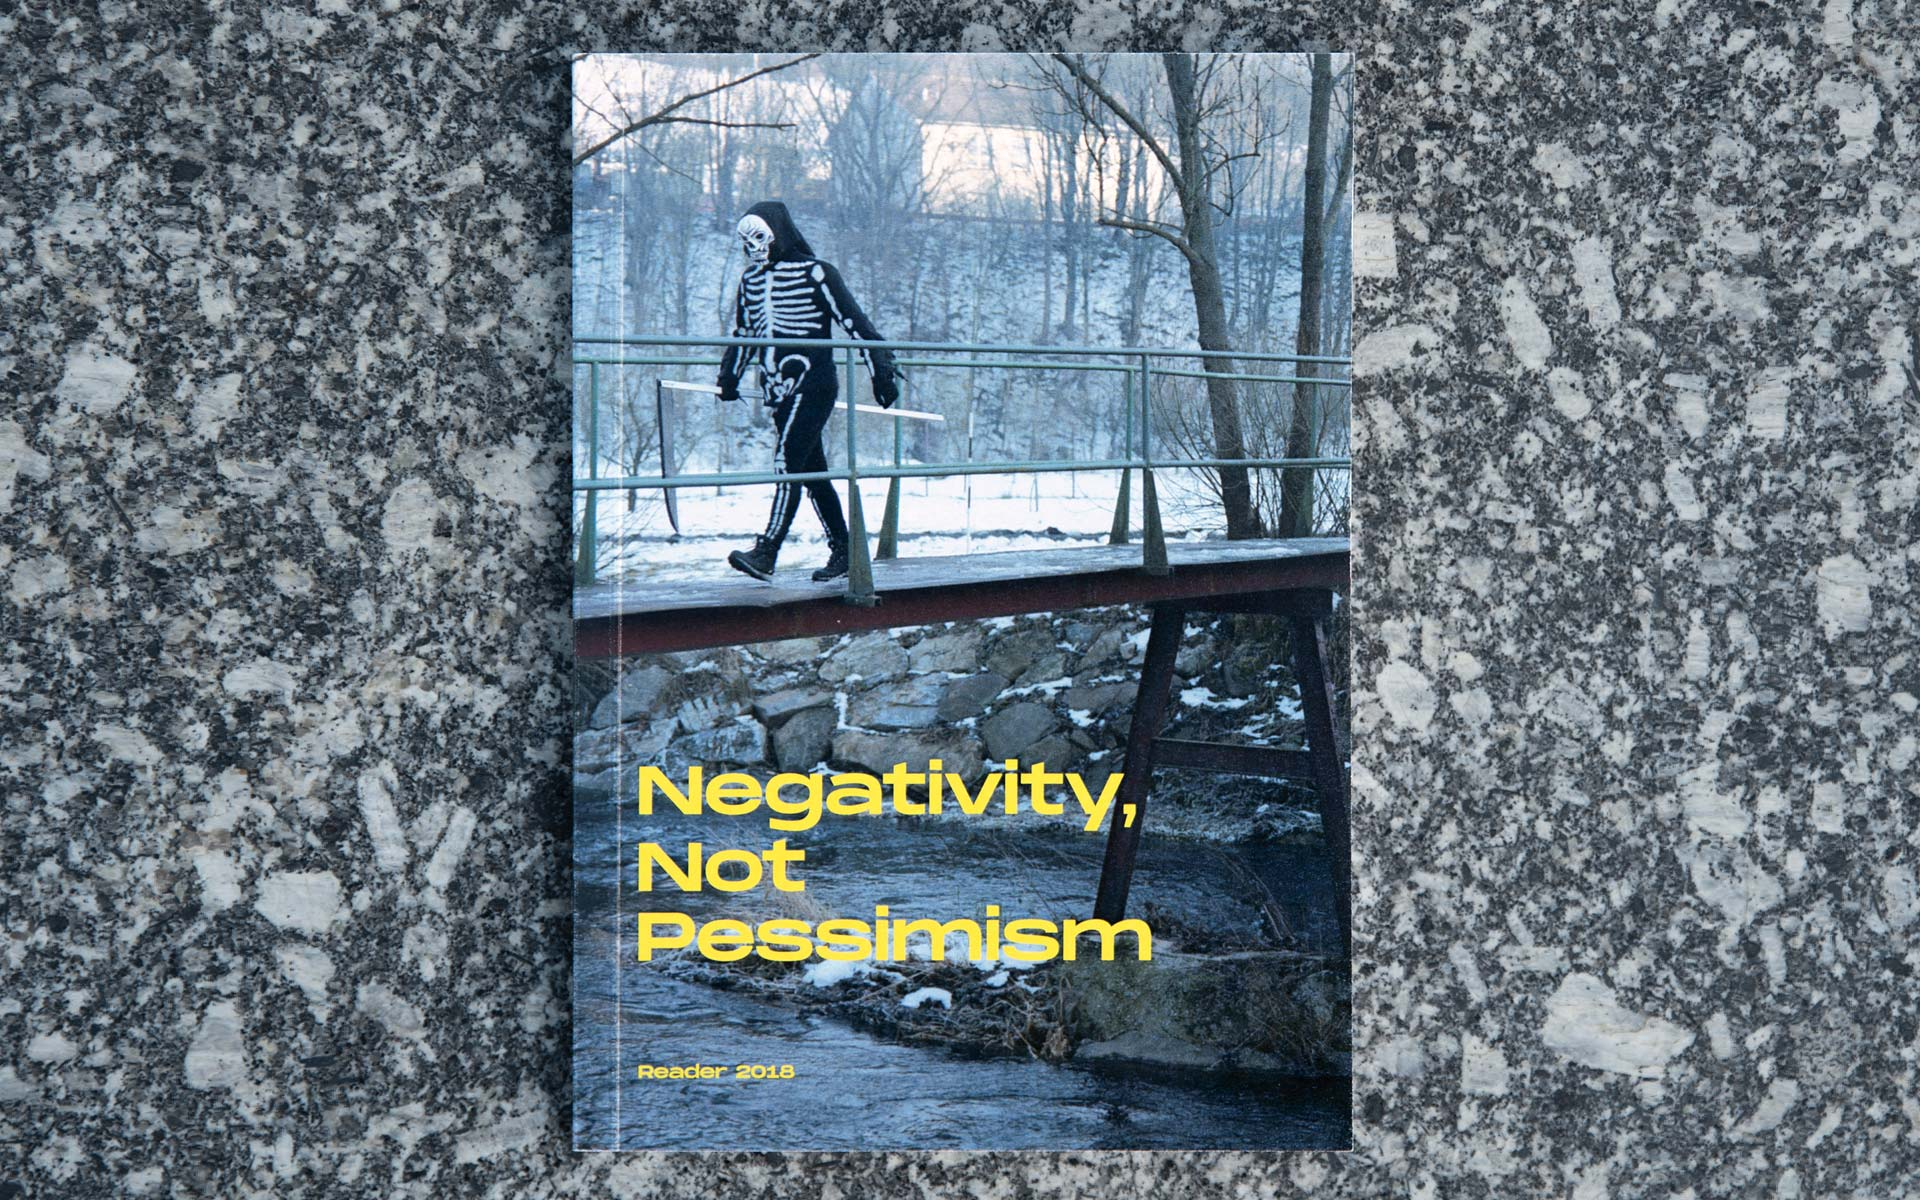 Negativity, Not Pessimism